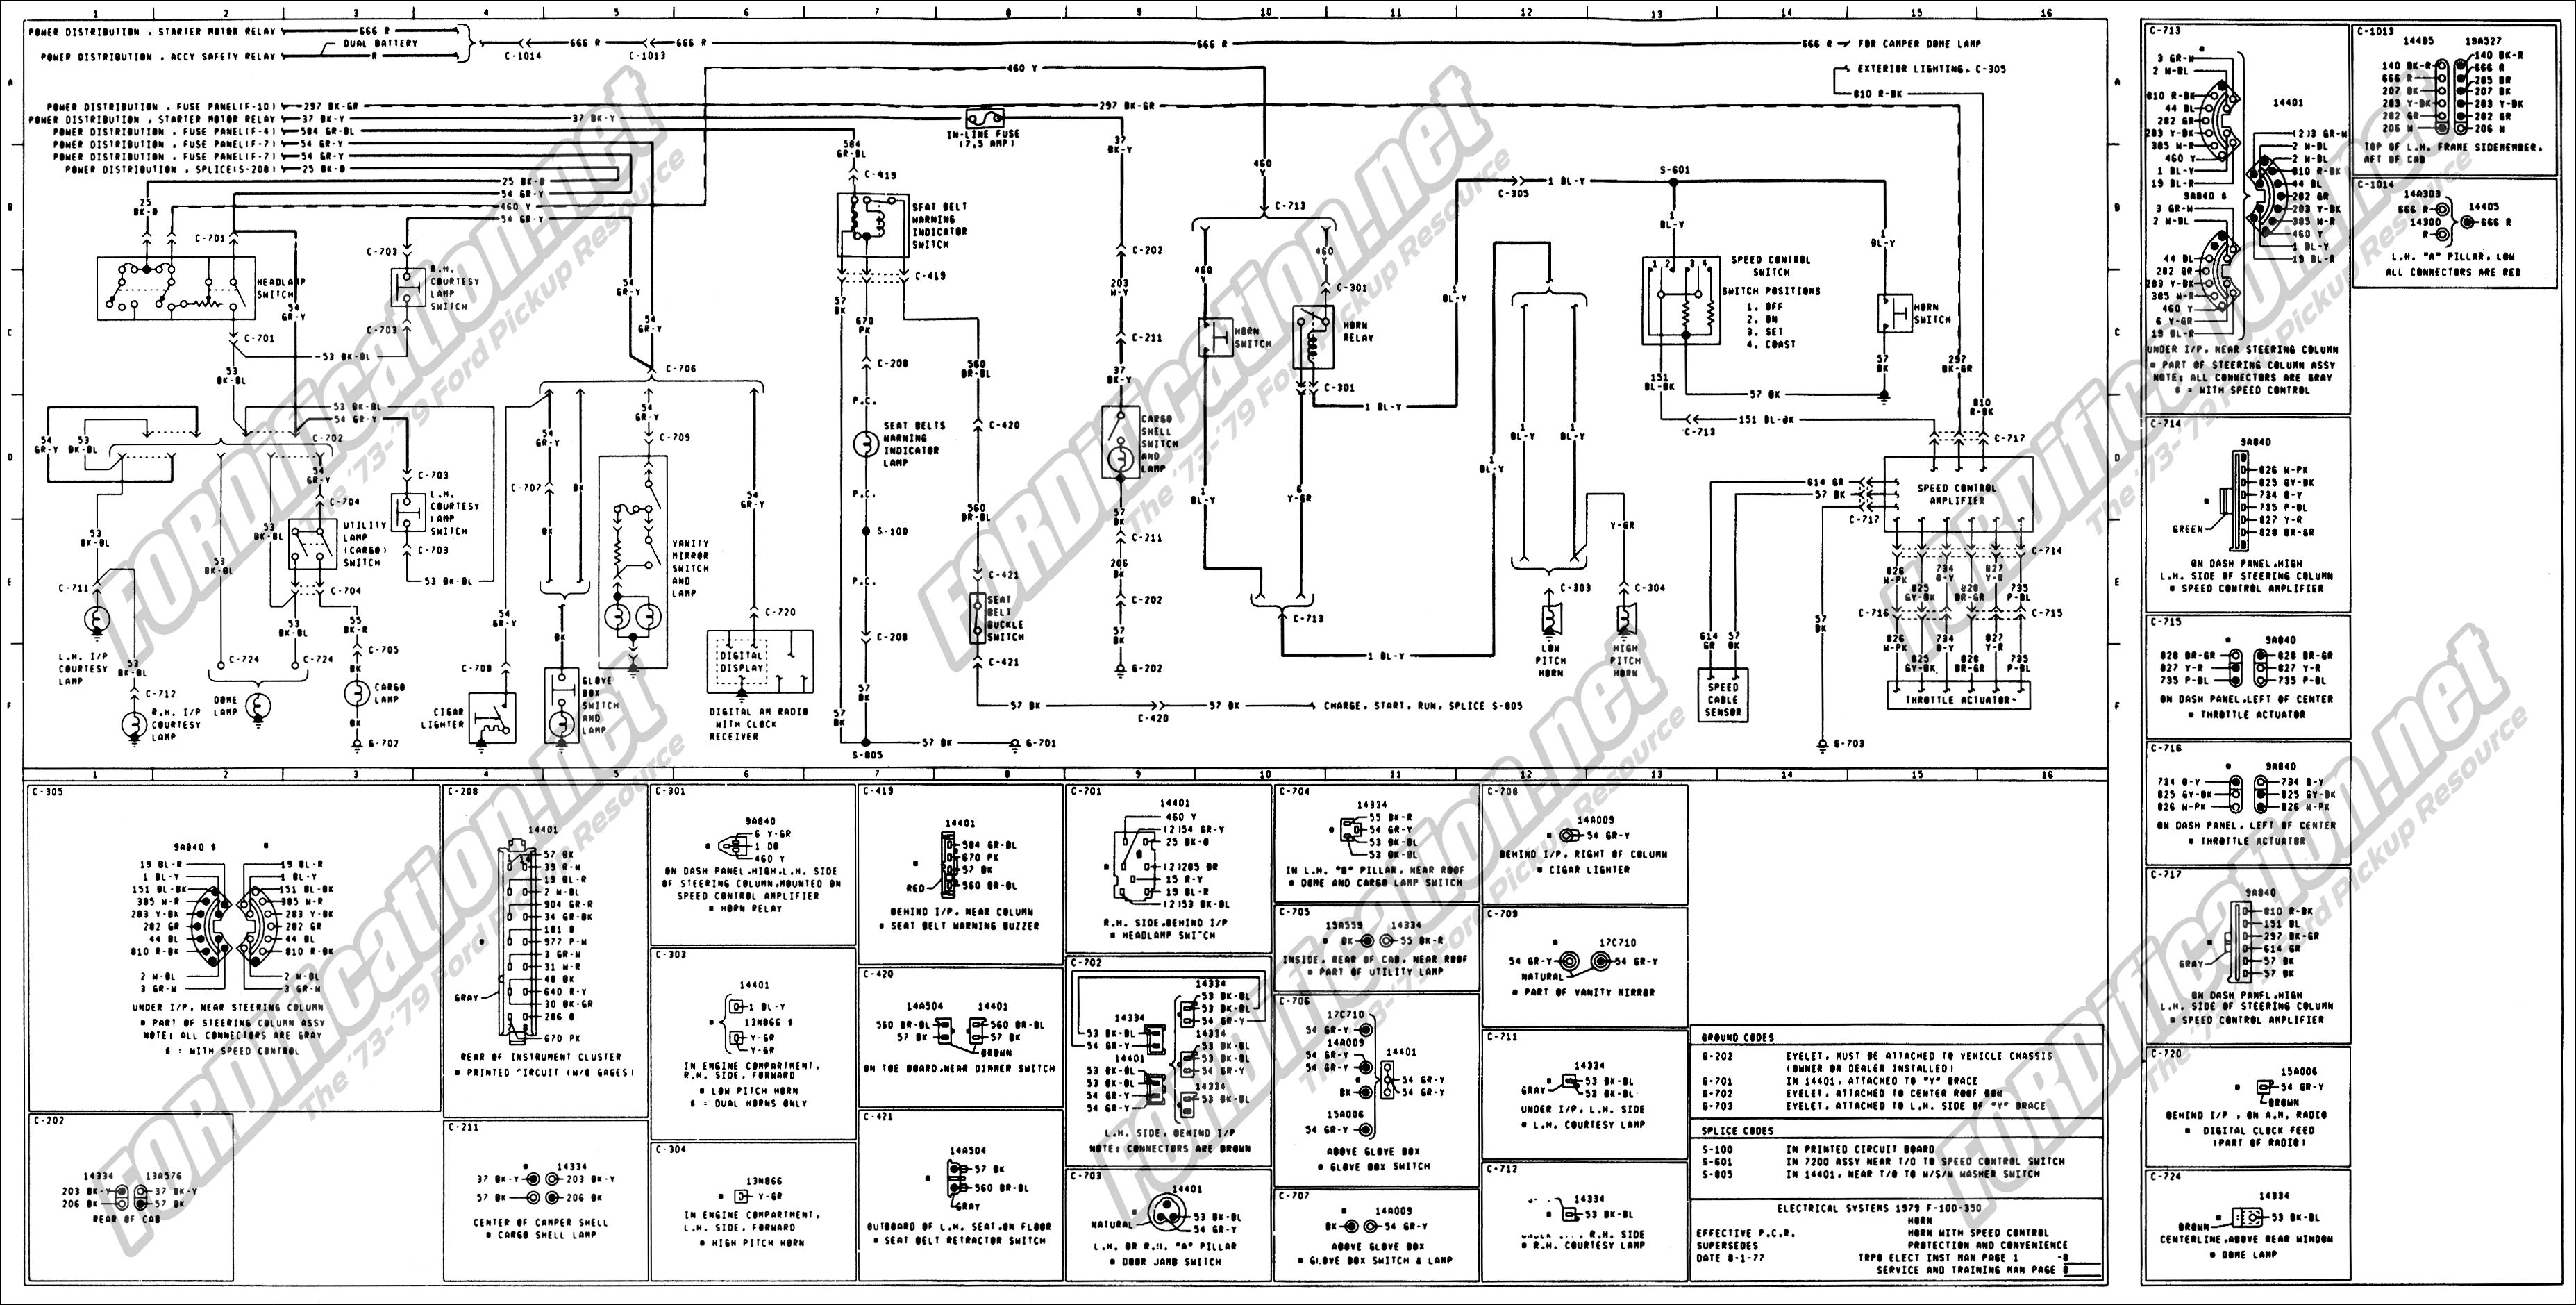 wiring_79master_8of9 1973 1979 ford truck wiring diagrams & schematics fordification net master control wiring diagram at crackthecode.co